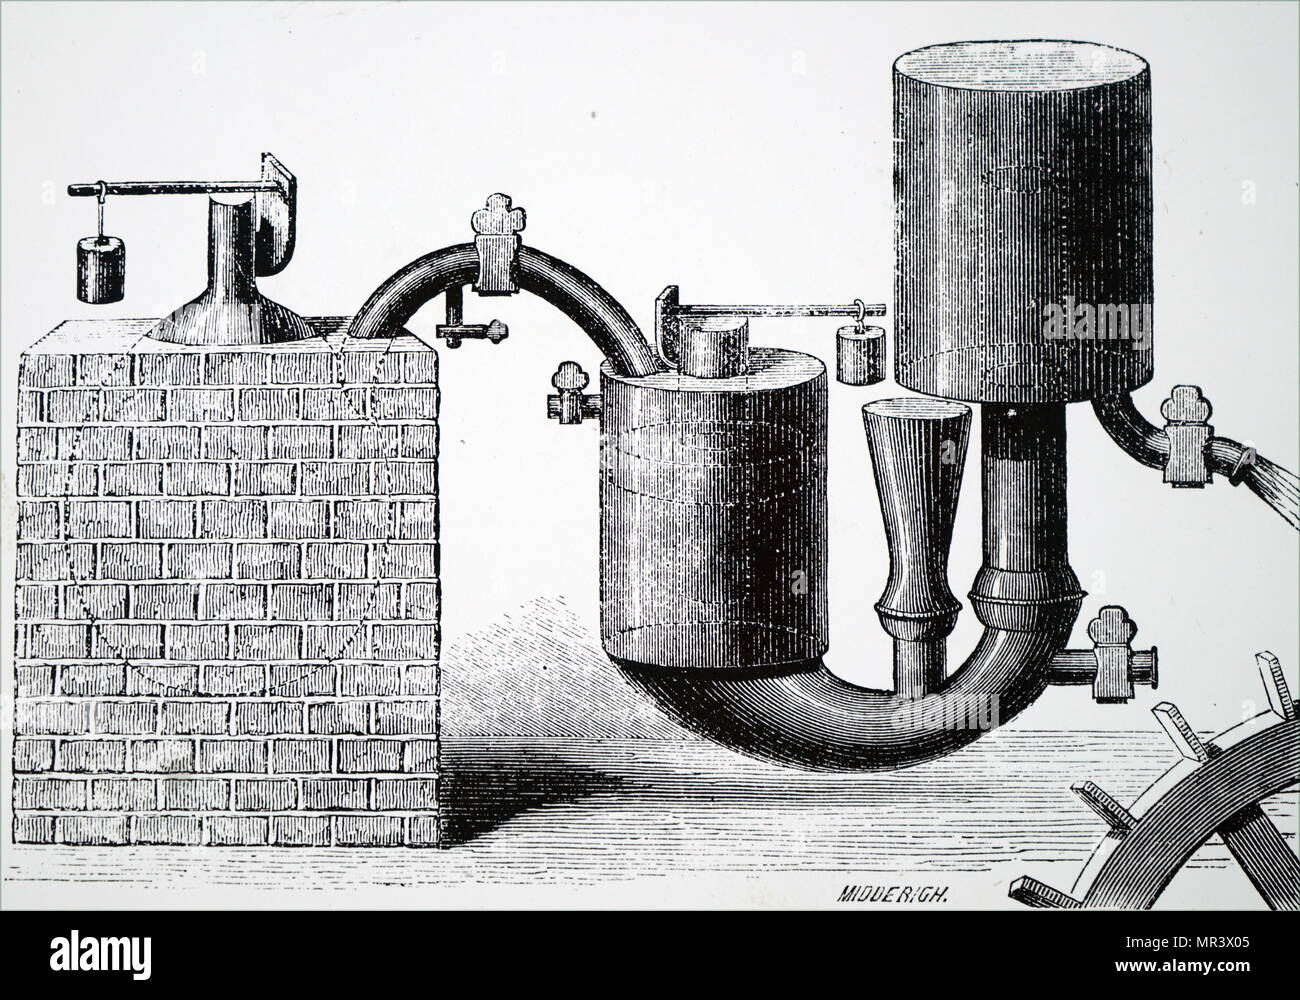 Illustration depicting Papin's steam engine (1707) for pumping water from mines. It was the first engine to use the safety valve he had invented twenty-seven years earlier for his 'digester'. (1647-1713) a French physicist, mathematician and inventor, best known for his pioneering invention of the steam digester, the forerunner of the pressure cooker and of the steam engine. Dated 19th century - Stock Image